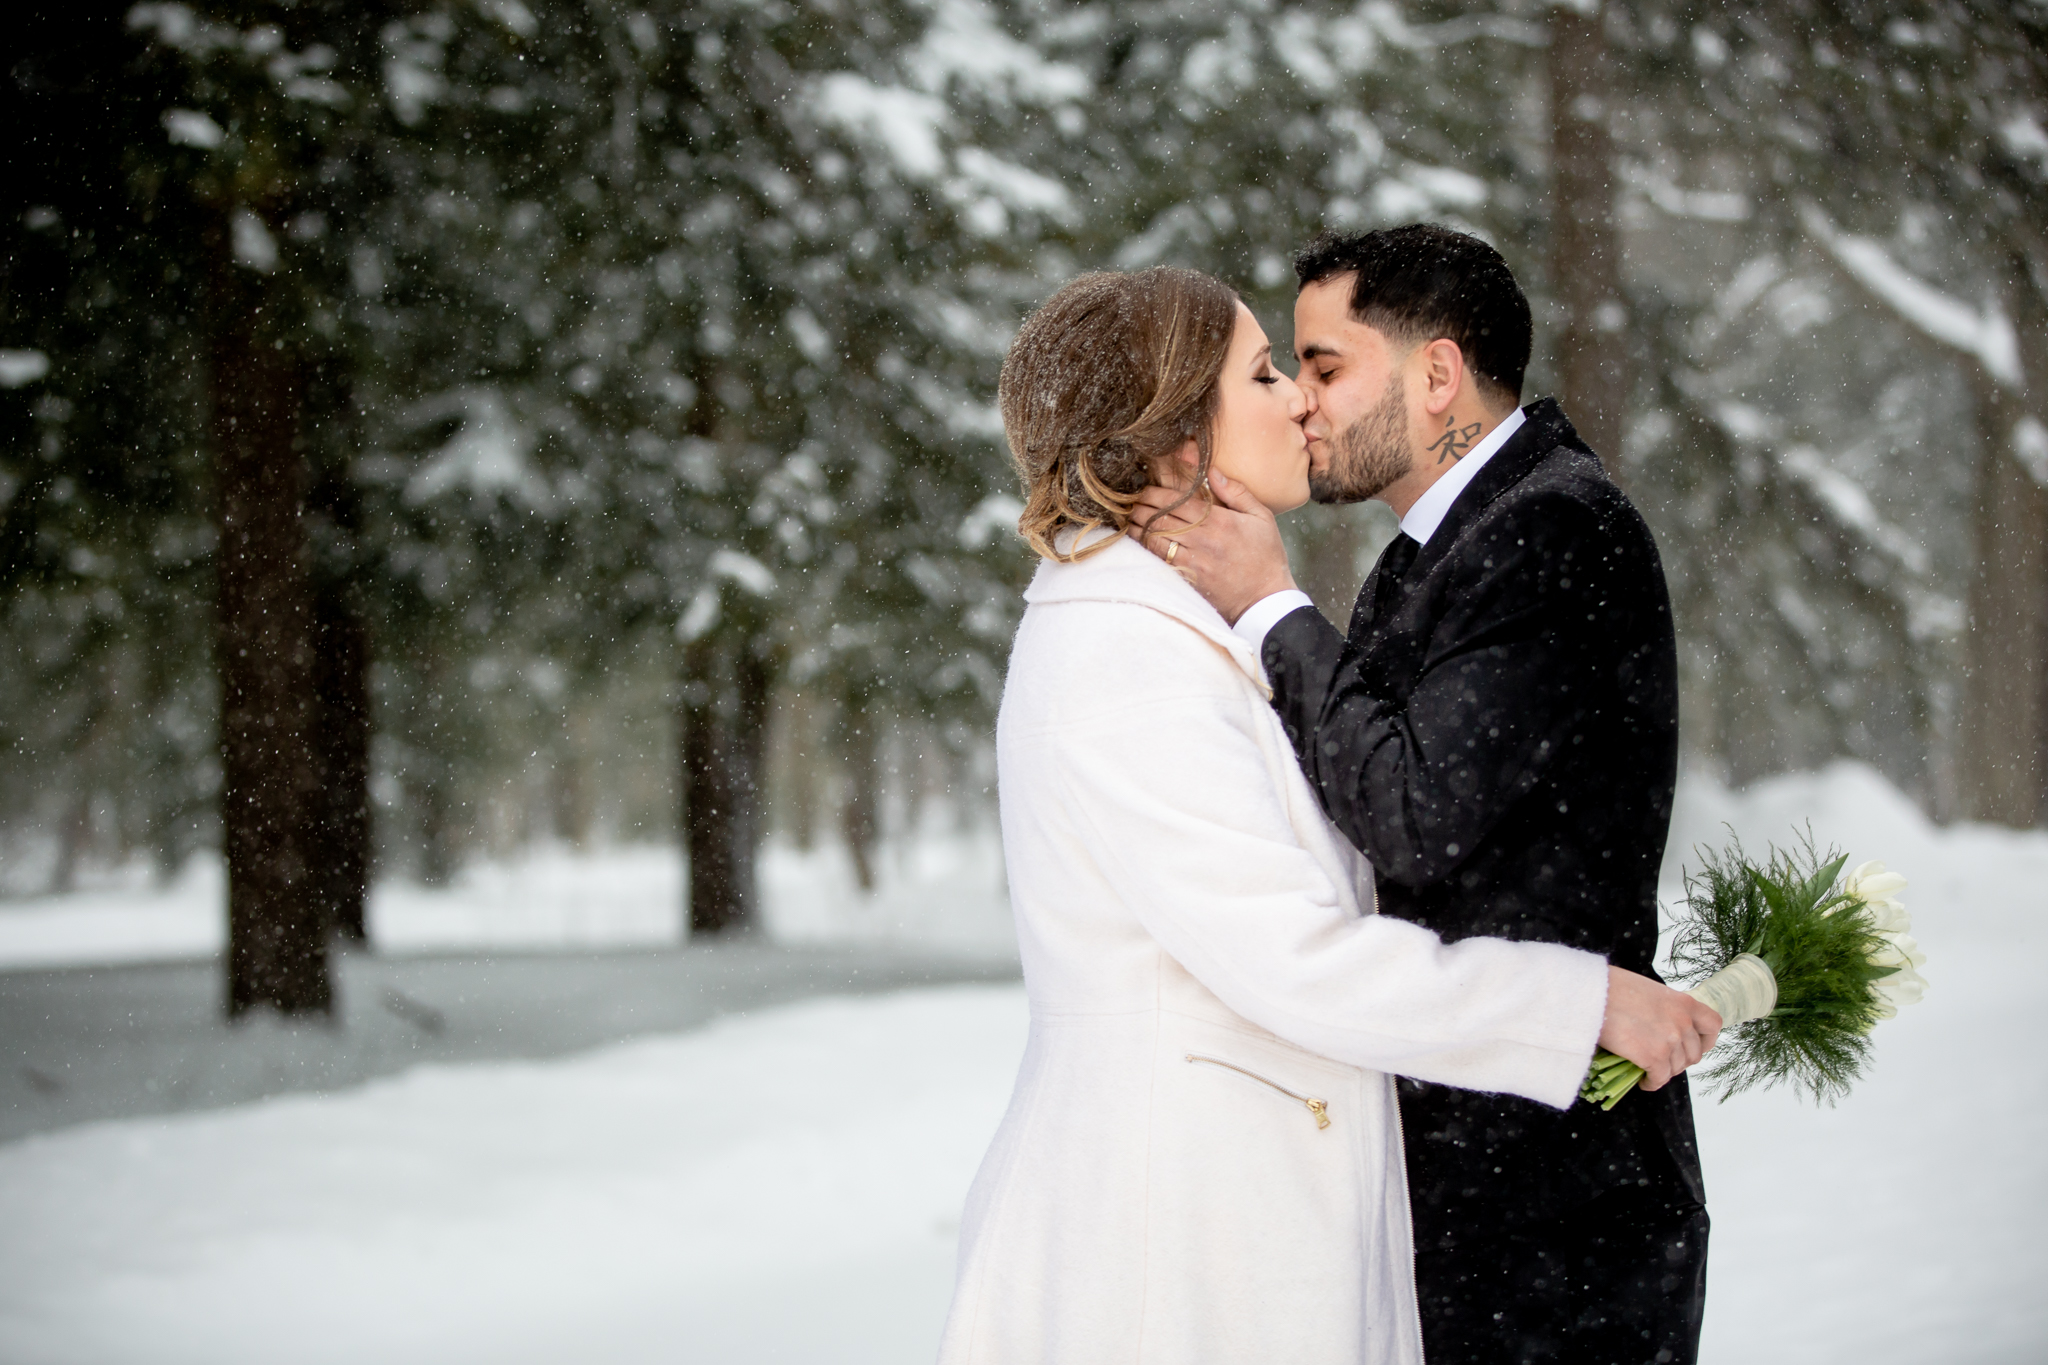 Winter Wedding Portraits at Chestnut Ridge Park in Orchard Park NY by Becca Sutherland Photography